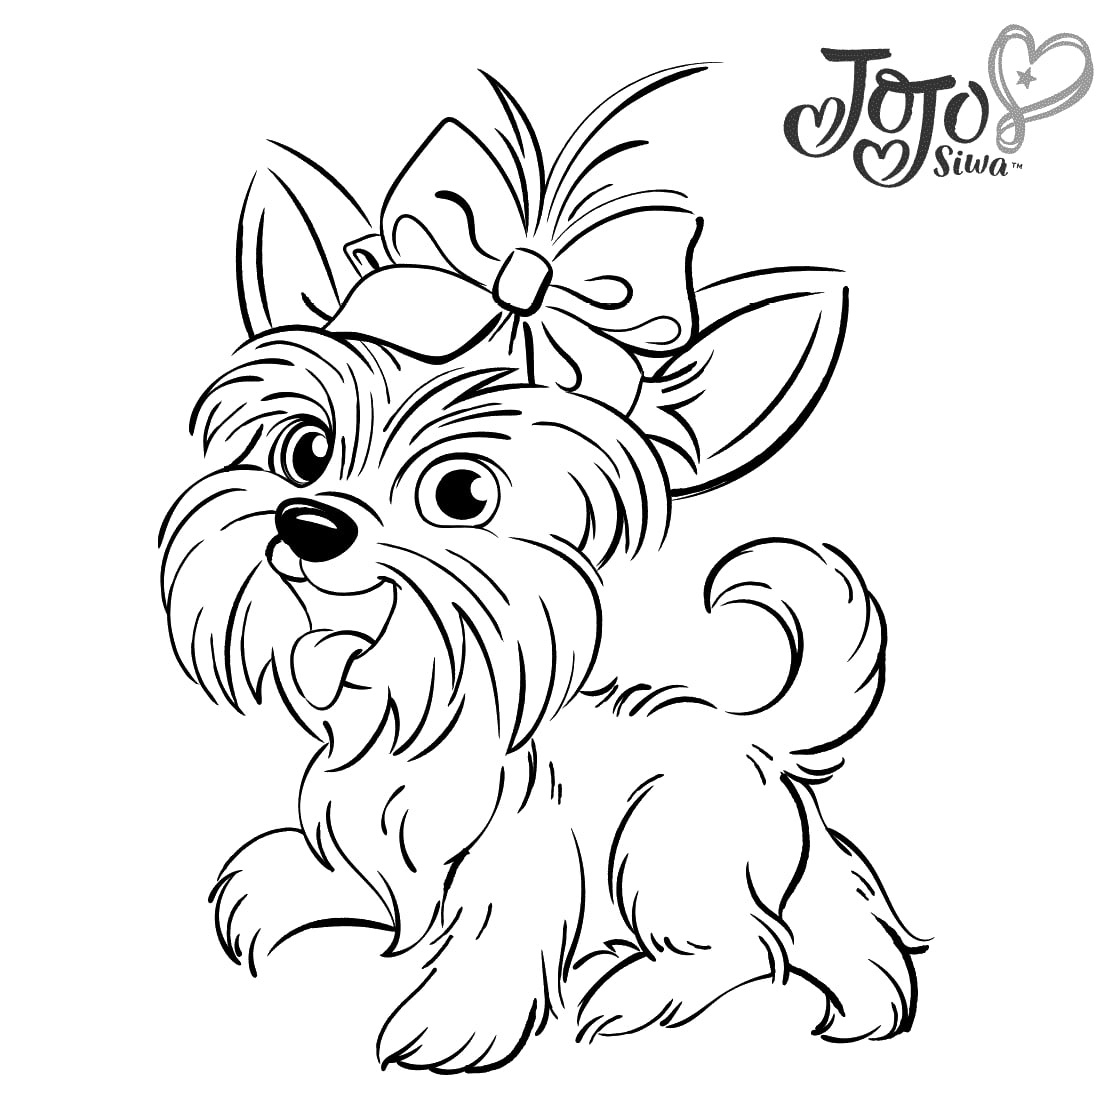 Jojo Siwa Coloring Pages 18 New Images Free Printable